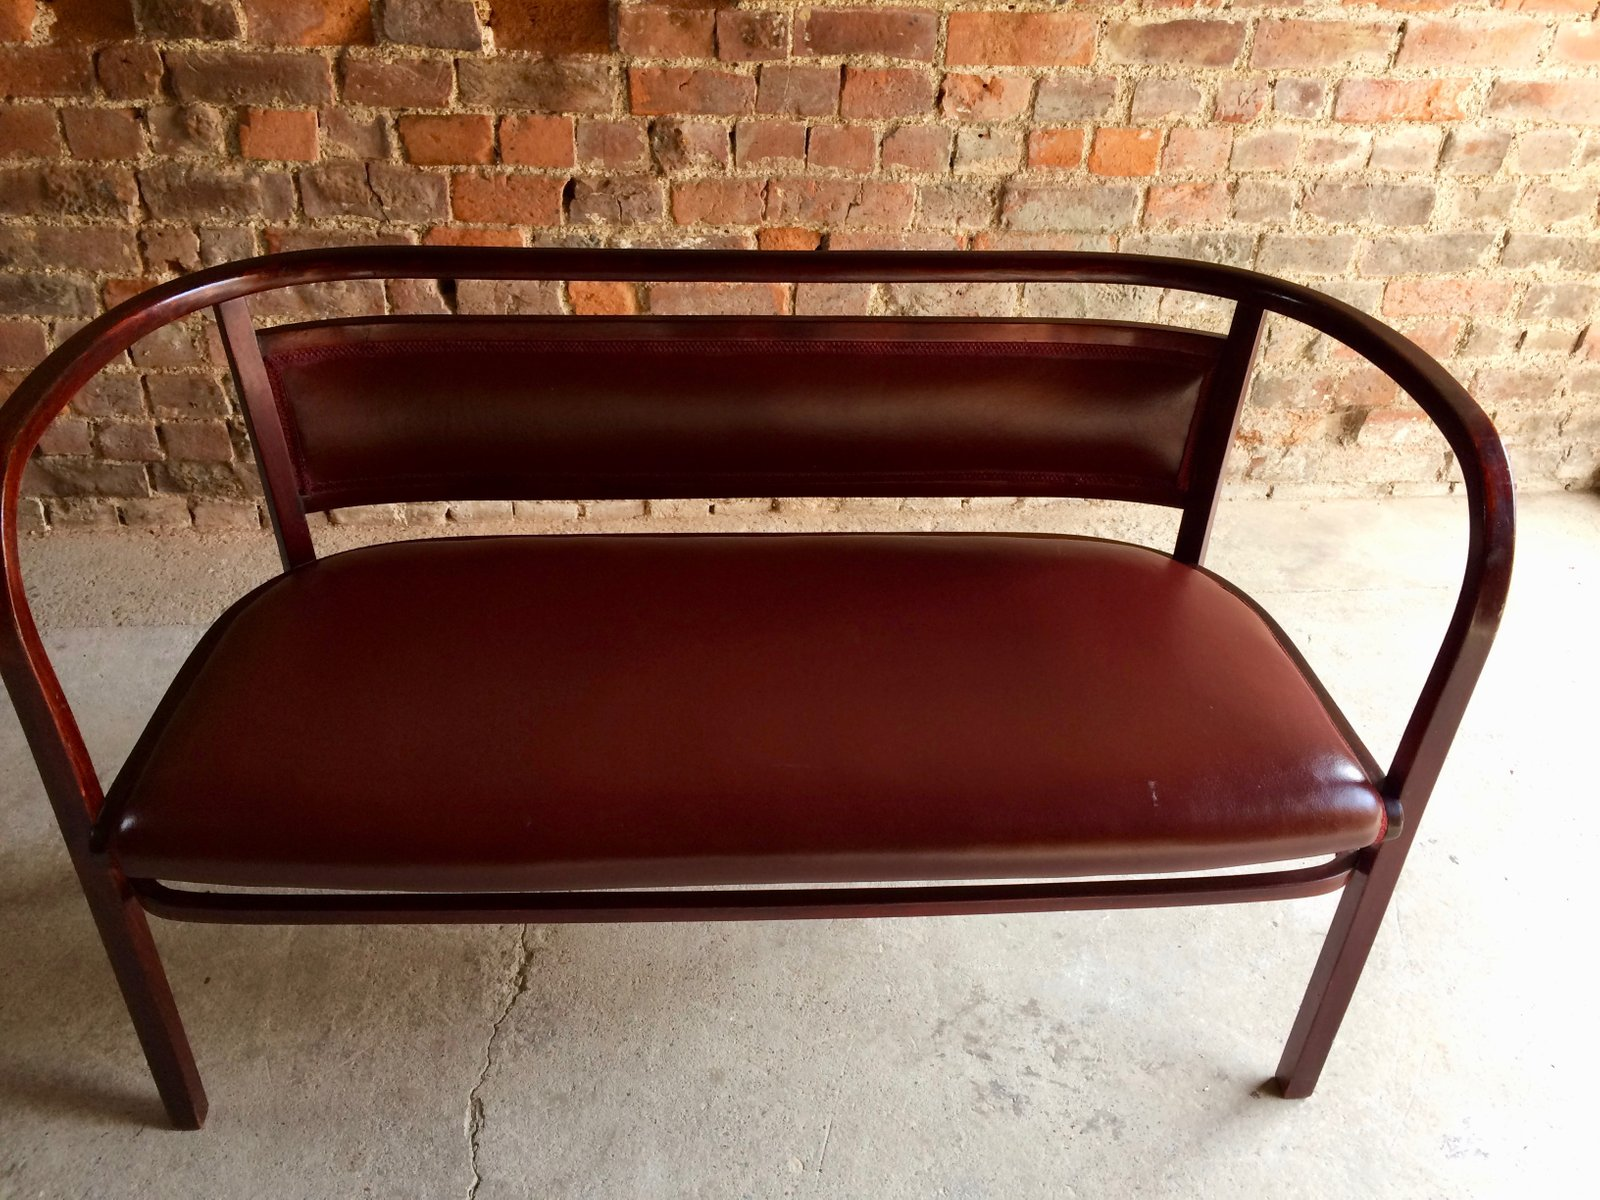 Otto Wagner Sofa Model 3 Bentwood Bench By Otto Wagner For Thonet 1900s